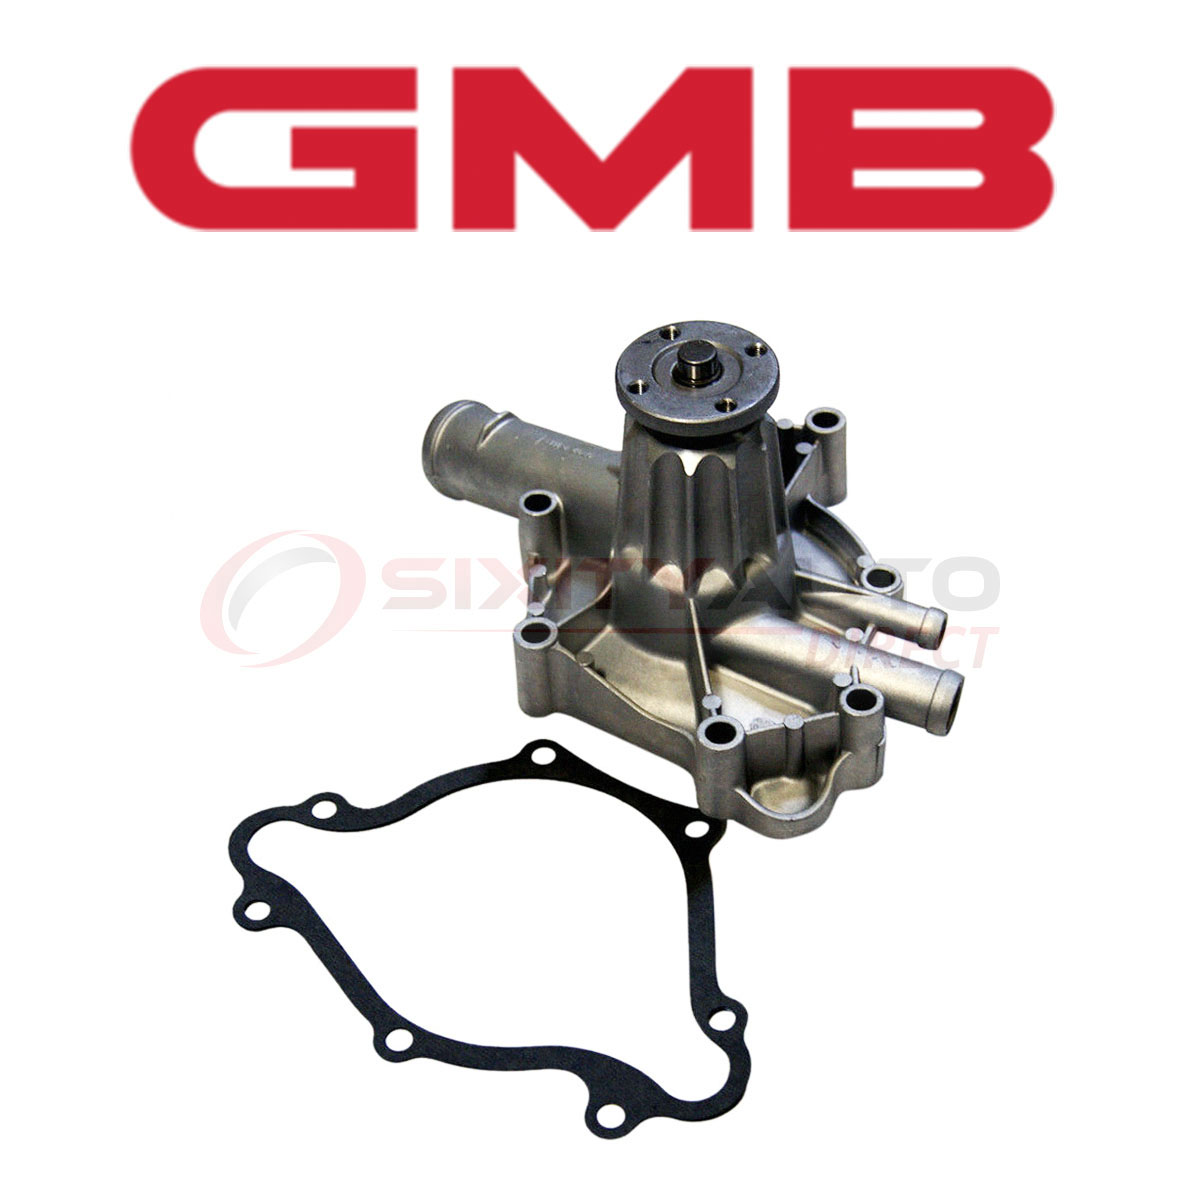 Water Pump for 1993-2003 Dodge Jeep B150 B1500 3.9L-5.9L V6 V8 OHV 12v 16v